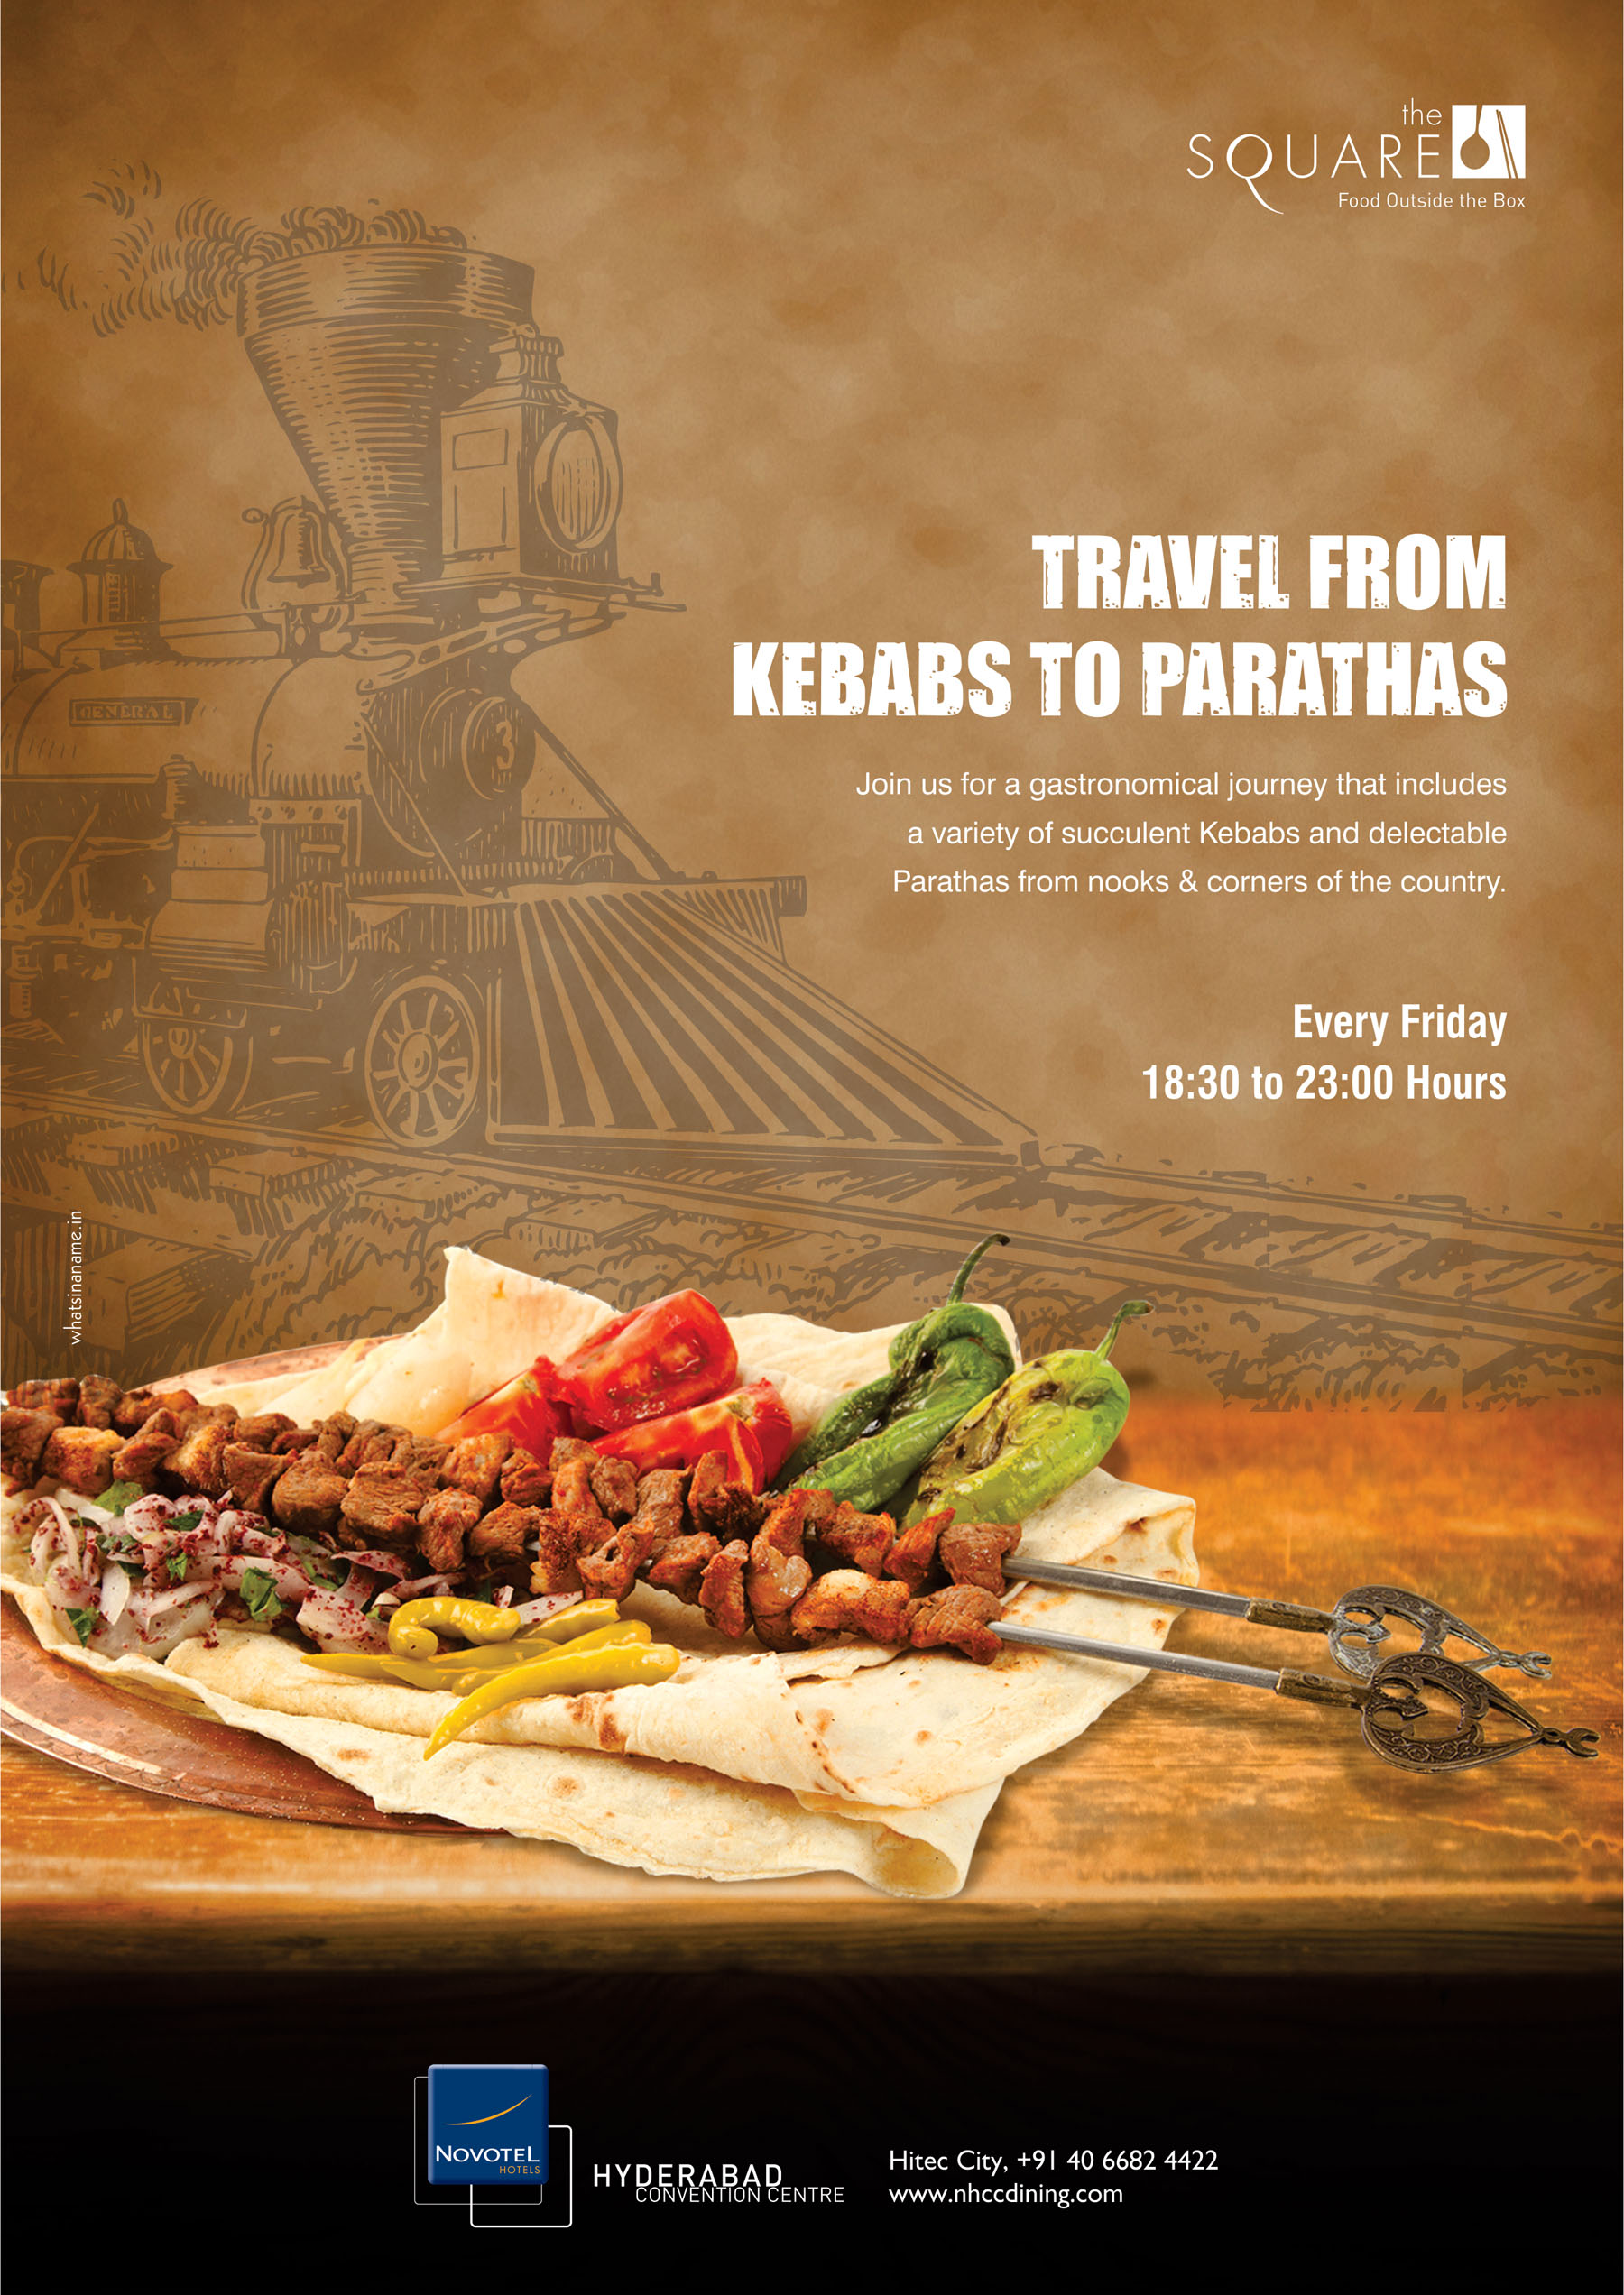 xqgkr1b1i0f-kebabs-festival,-paratha-festival,-what's-in-a-name-creatives,-best-advertising-agency